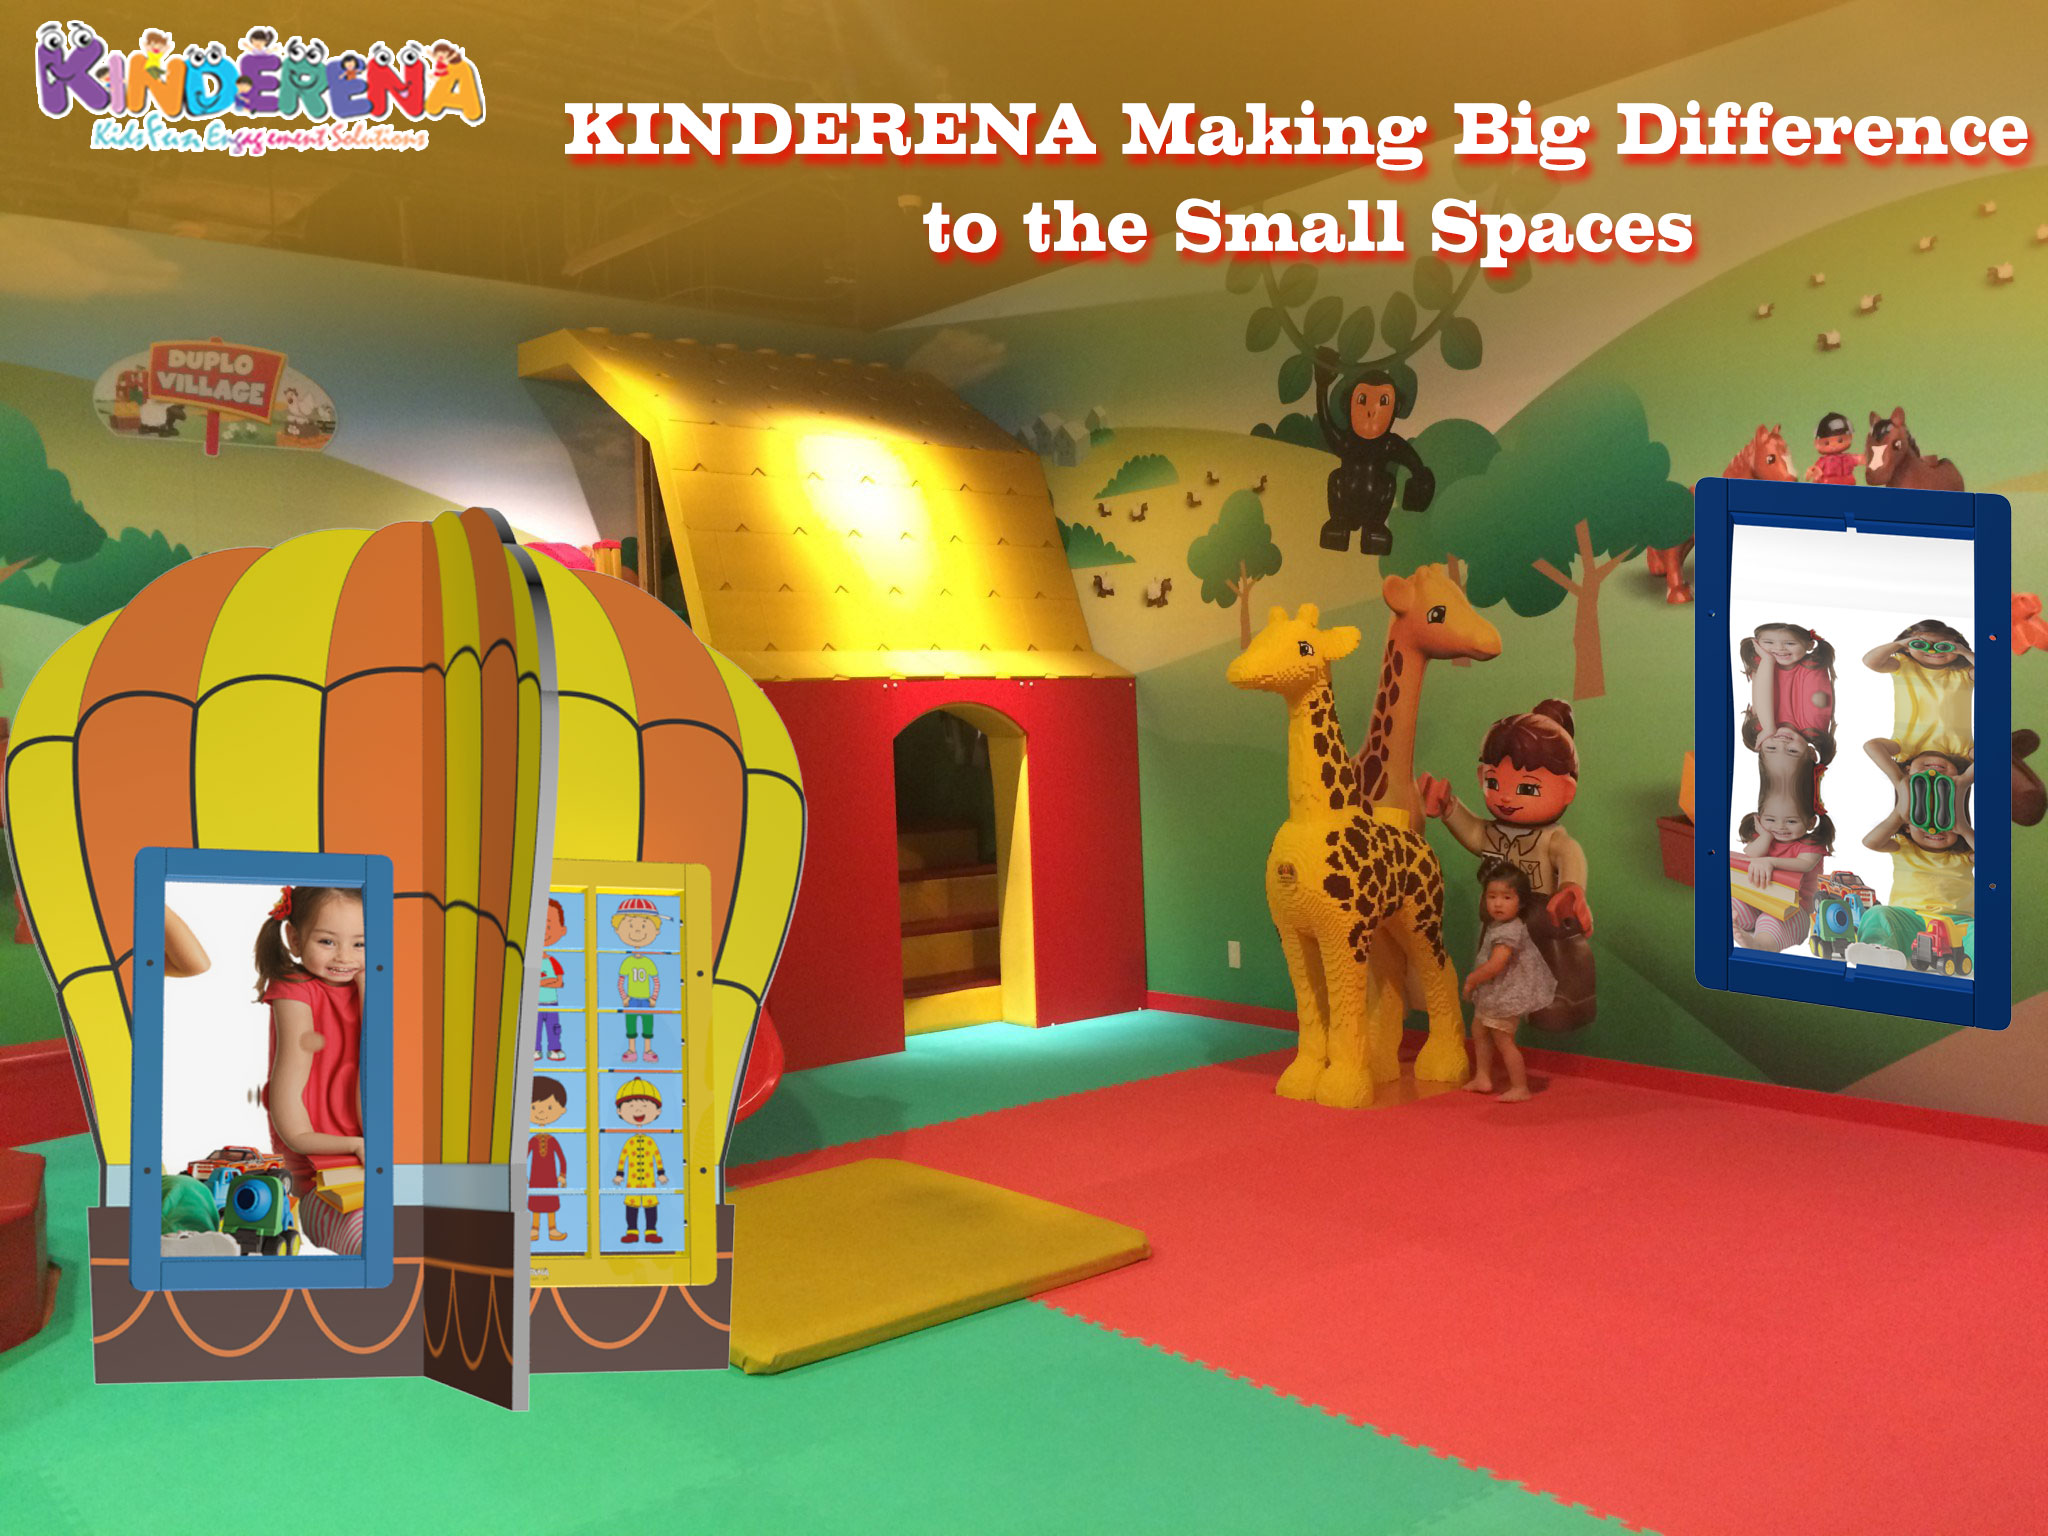 KINDERENA Making Big Difference to the Small Spaces